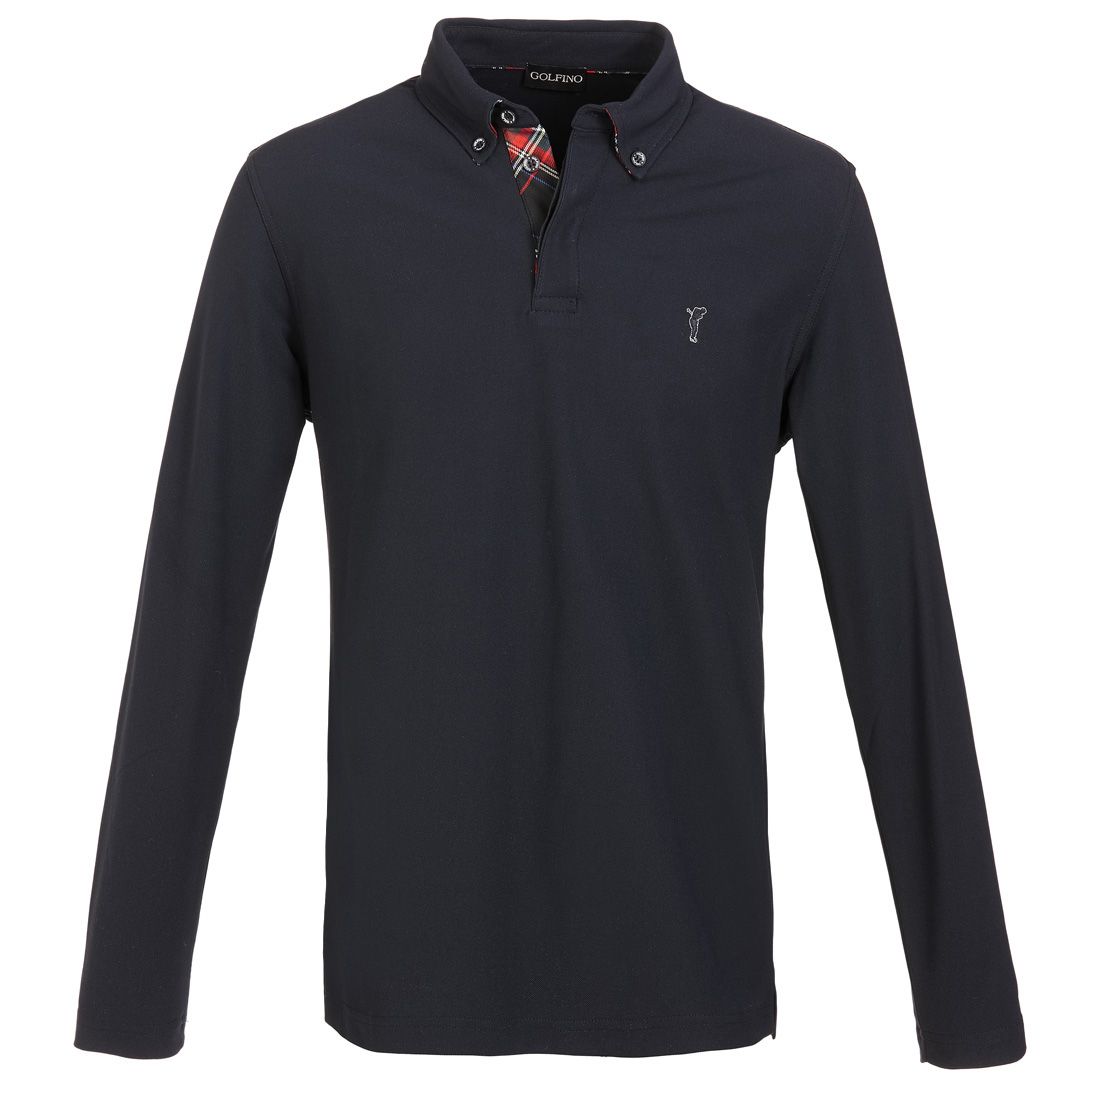 Langarm Funktions-Golf-Piqué mit Moisture Management und Button-Down-Kragen